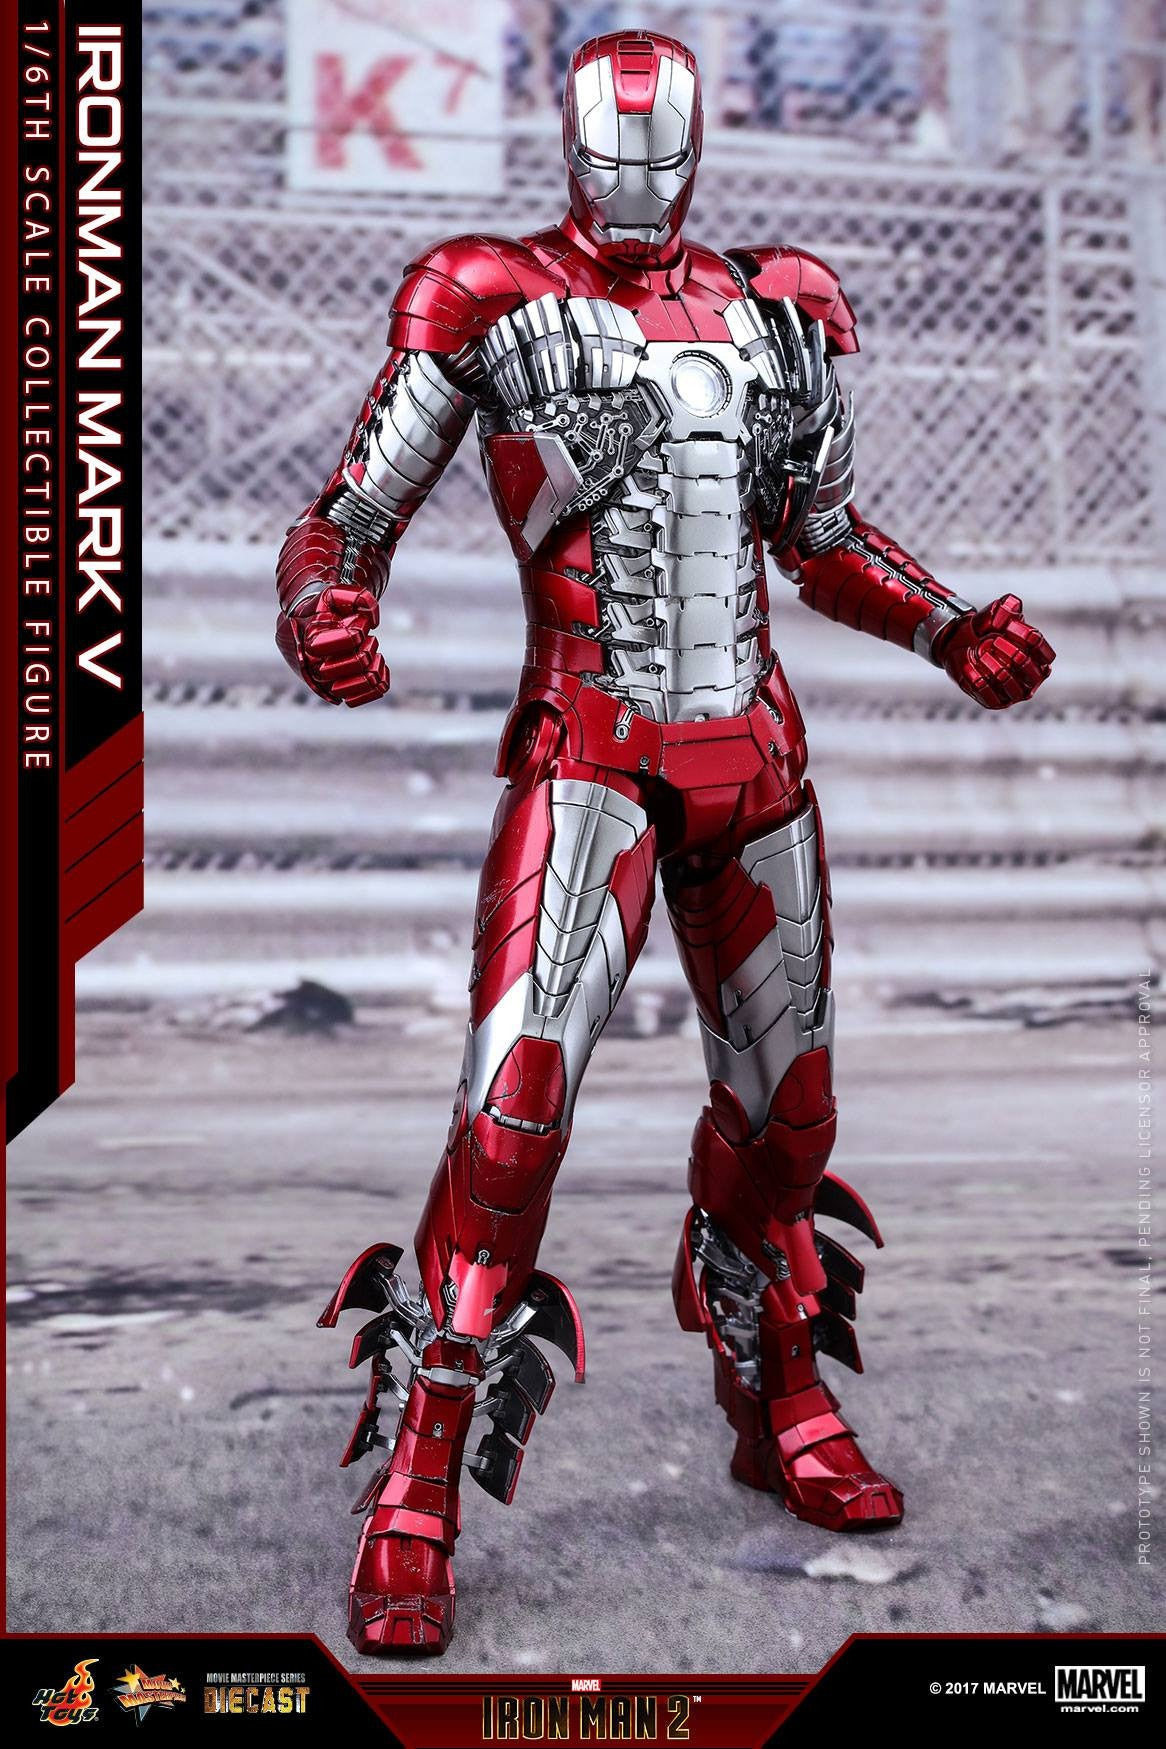 Hot Toys - MMS400D18 - Iron Man 2 - Mark V (DIECAST) - Marvelous Toys - 6